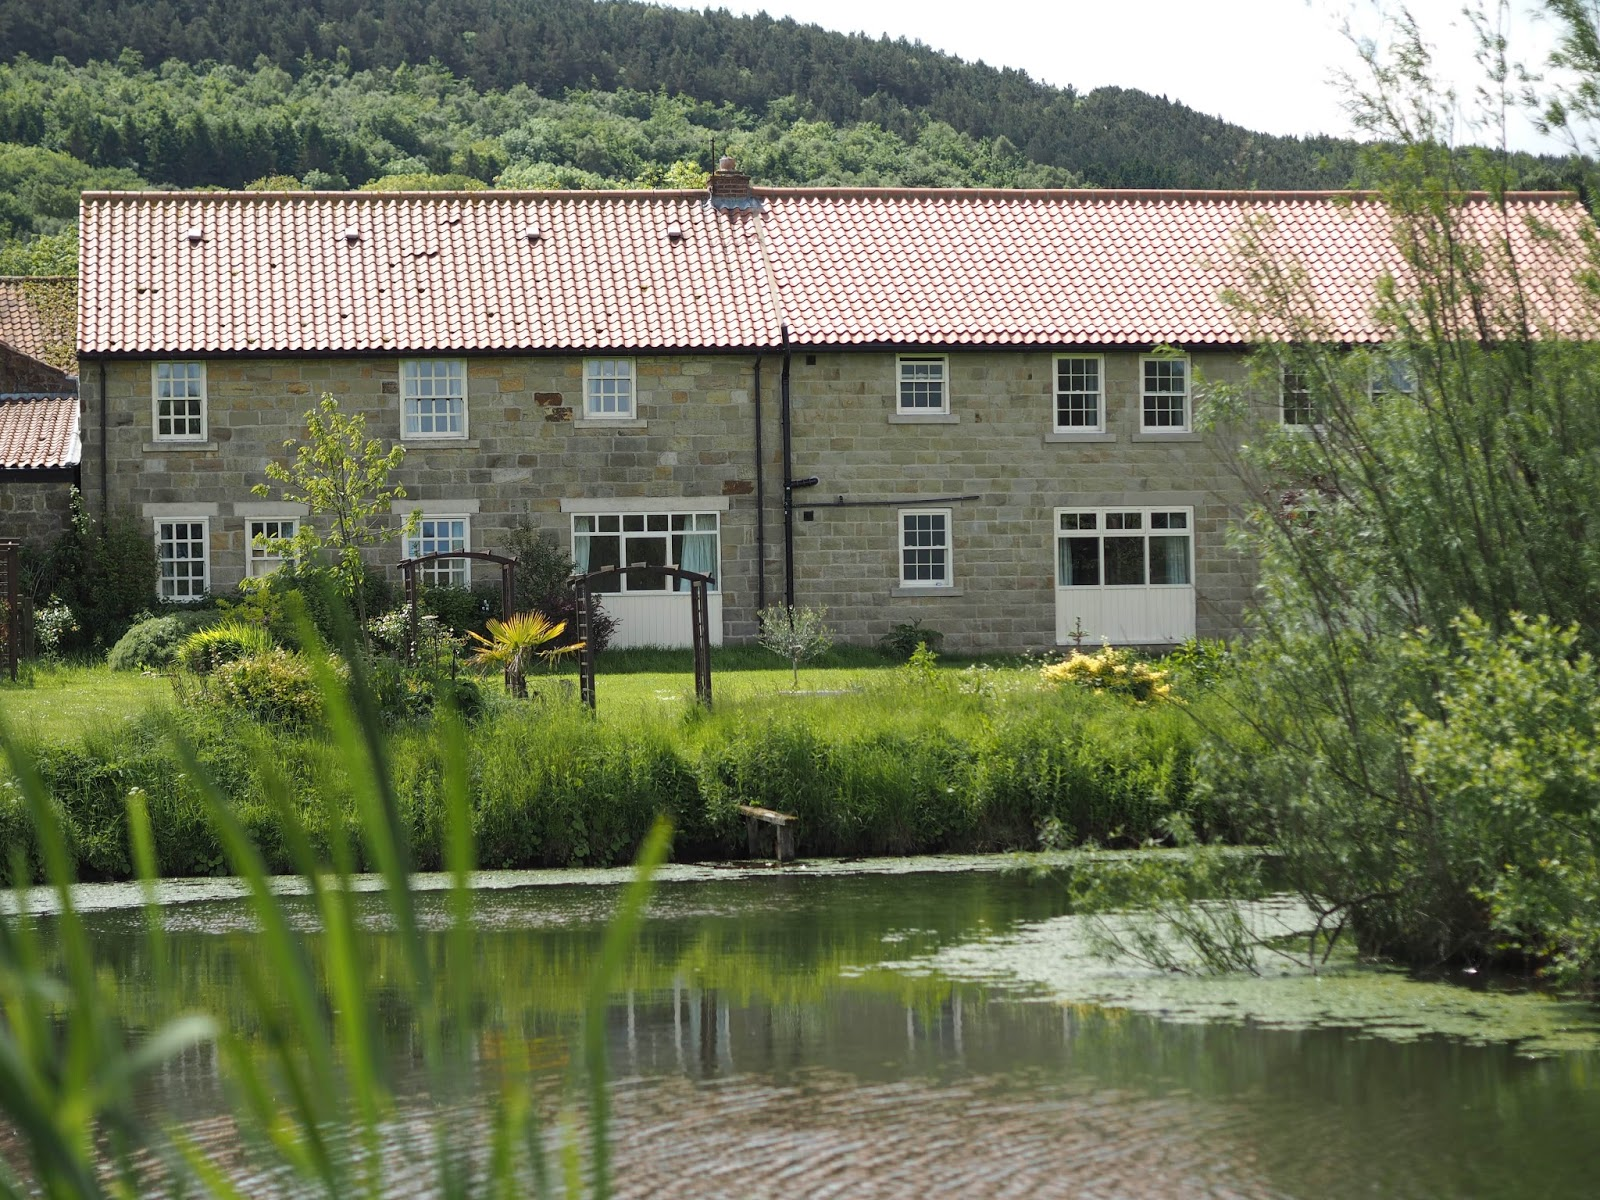 Lake and view of Ox Pasture Hall Country Hotel, Scarborough, Yorkshire, romantic hotel near beach in Scarborough